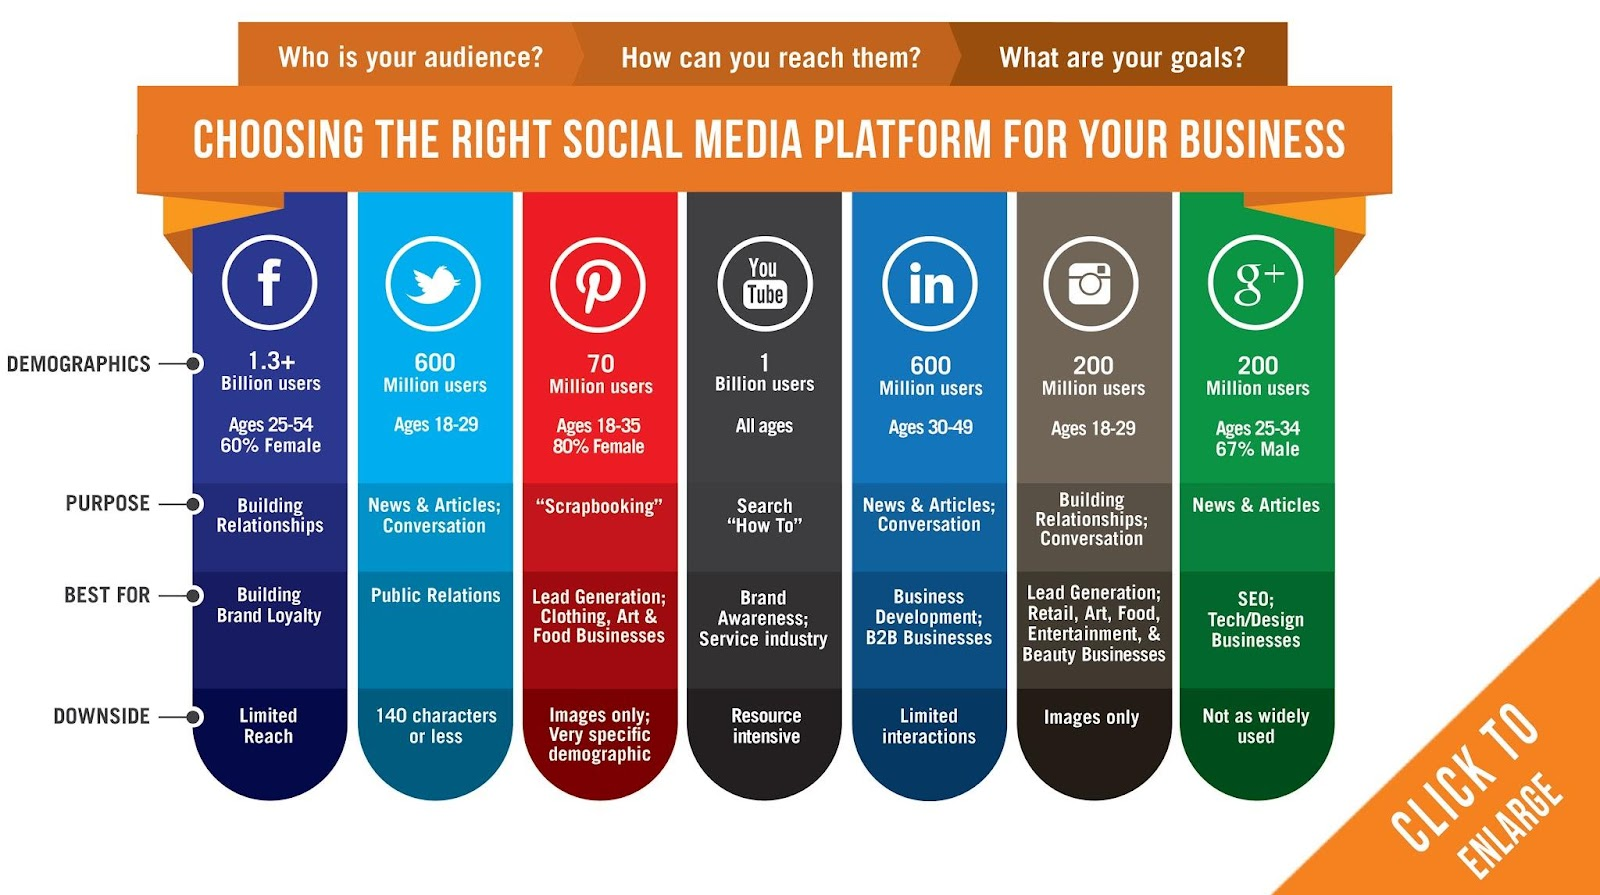 Image shows various social media platforms and their advantages and disadvantages.